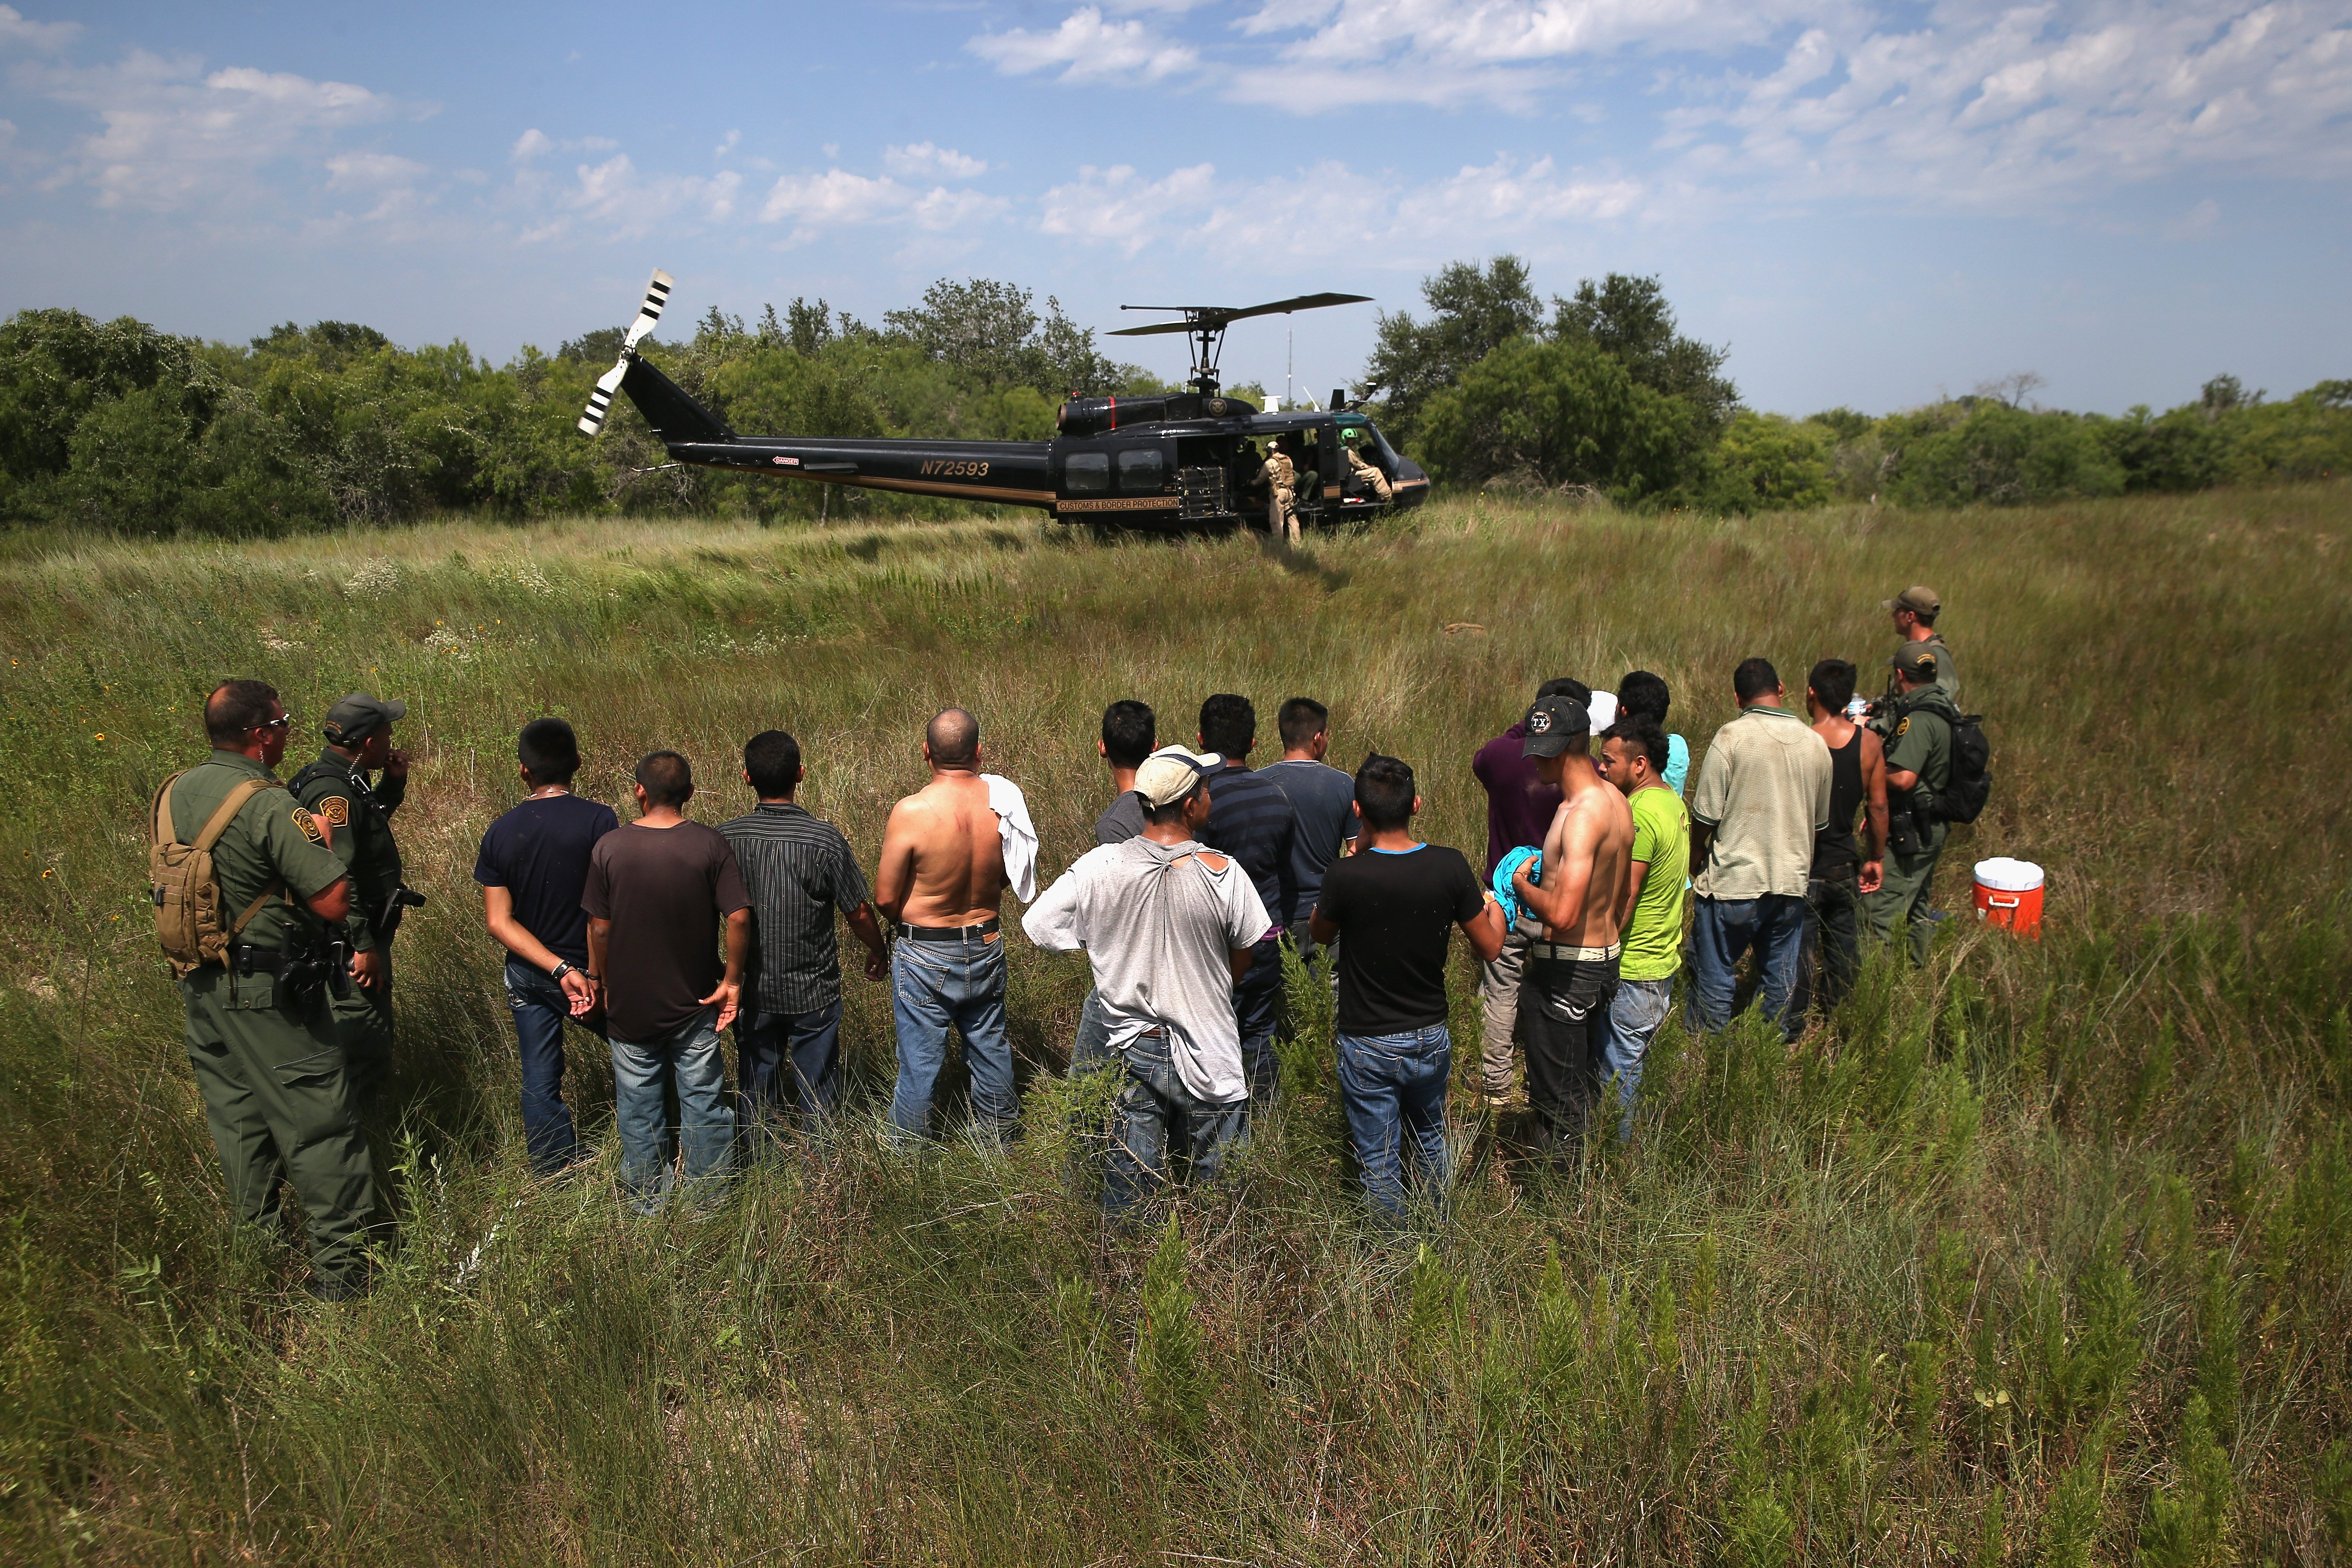 U.S. Border Patrol agents guard undocumented immigrants before sending them to a processing center near Falfurrias, Texas on July 22, 2014.